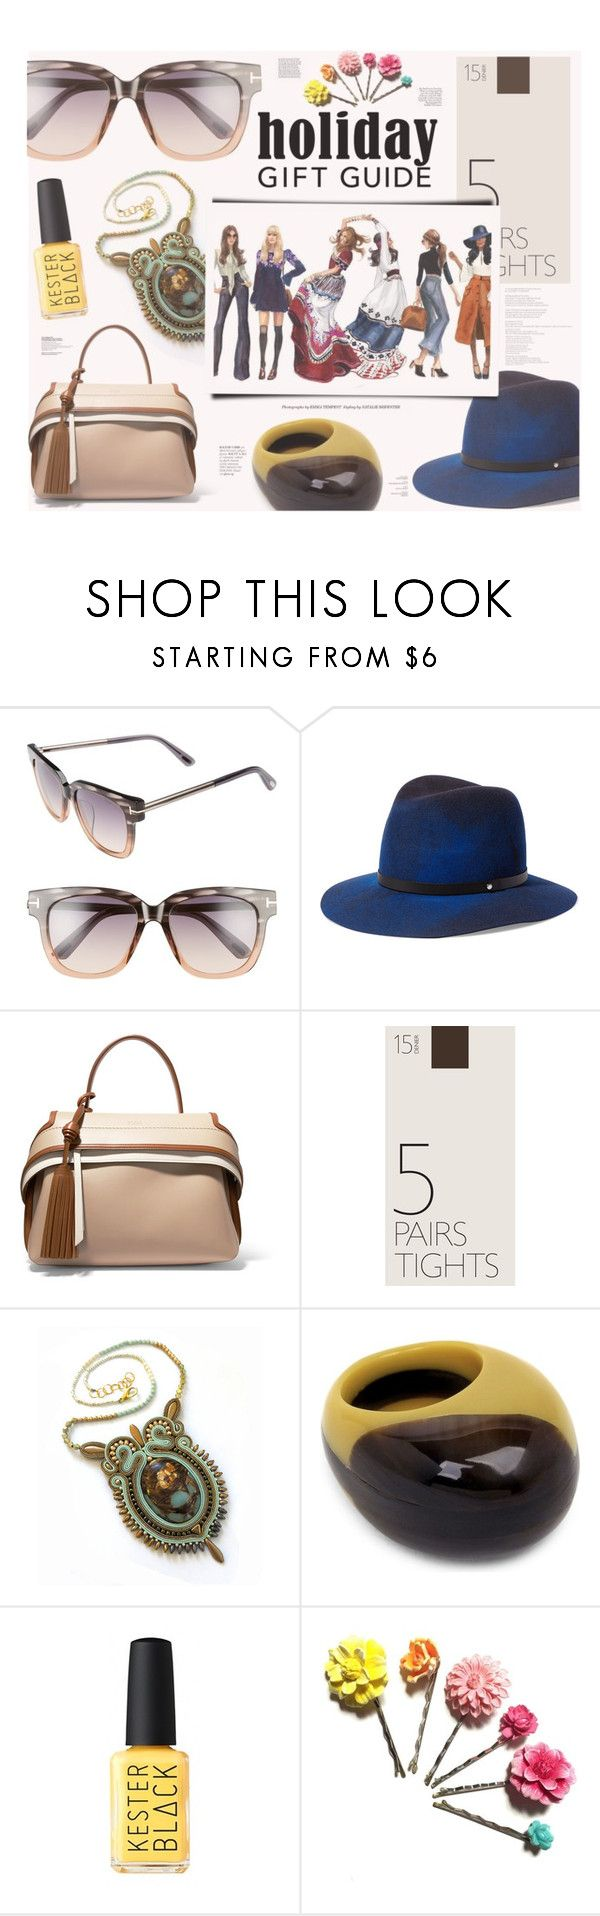 """Holiday Gift Guide: Your Squad"" by katarina-blagojevic ❤ liked on Polyvore featuring Tom Ford, rag & bone, Tod's, John Lewis, Marni, Tarina Tarantino, hats, ring, sunglasses and handbag"